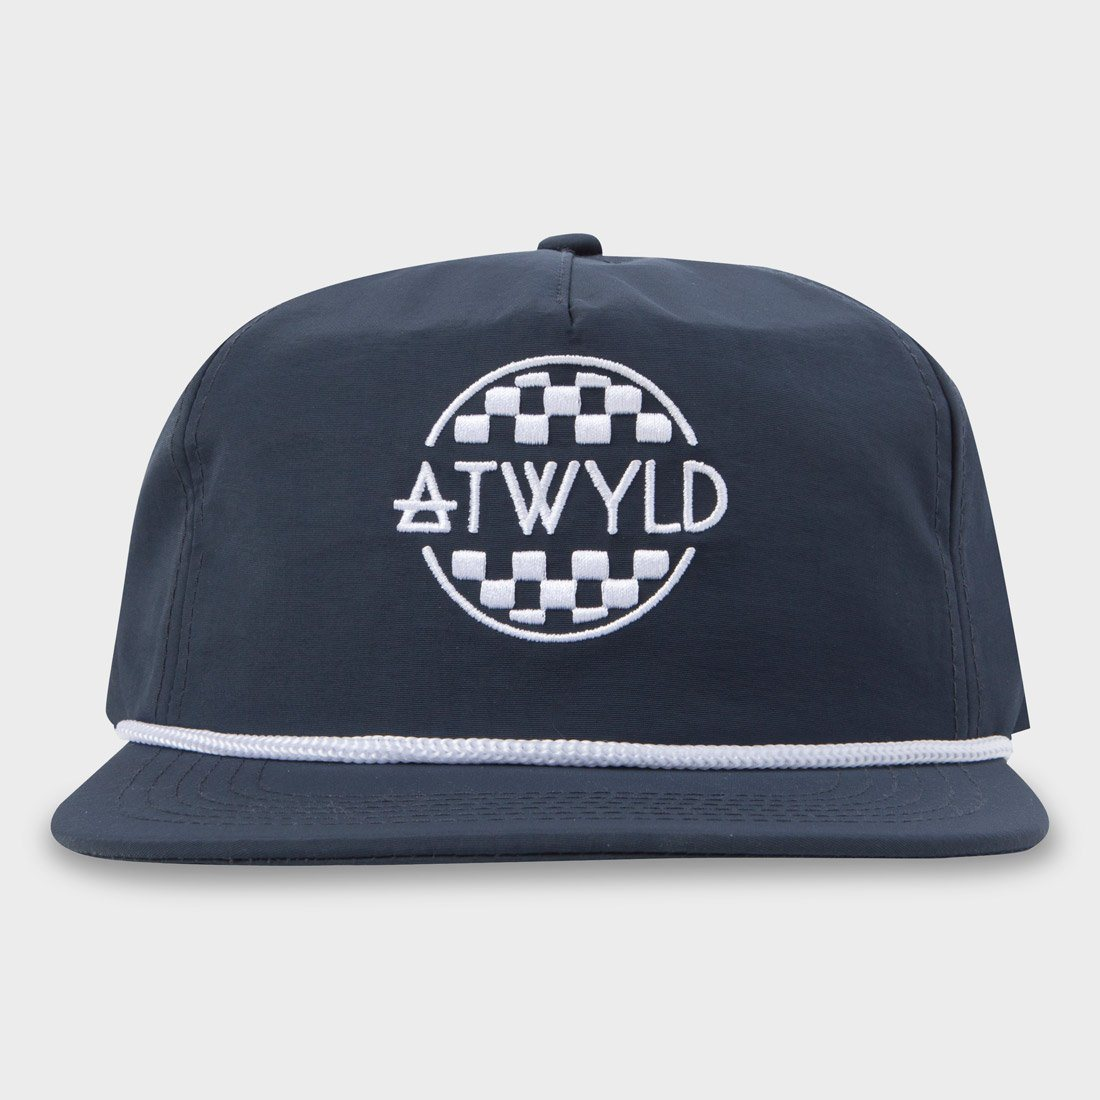 Atwyld Women's A-Team 5 Panel Hat Navy